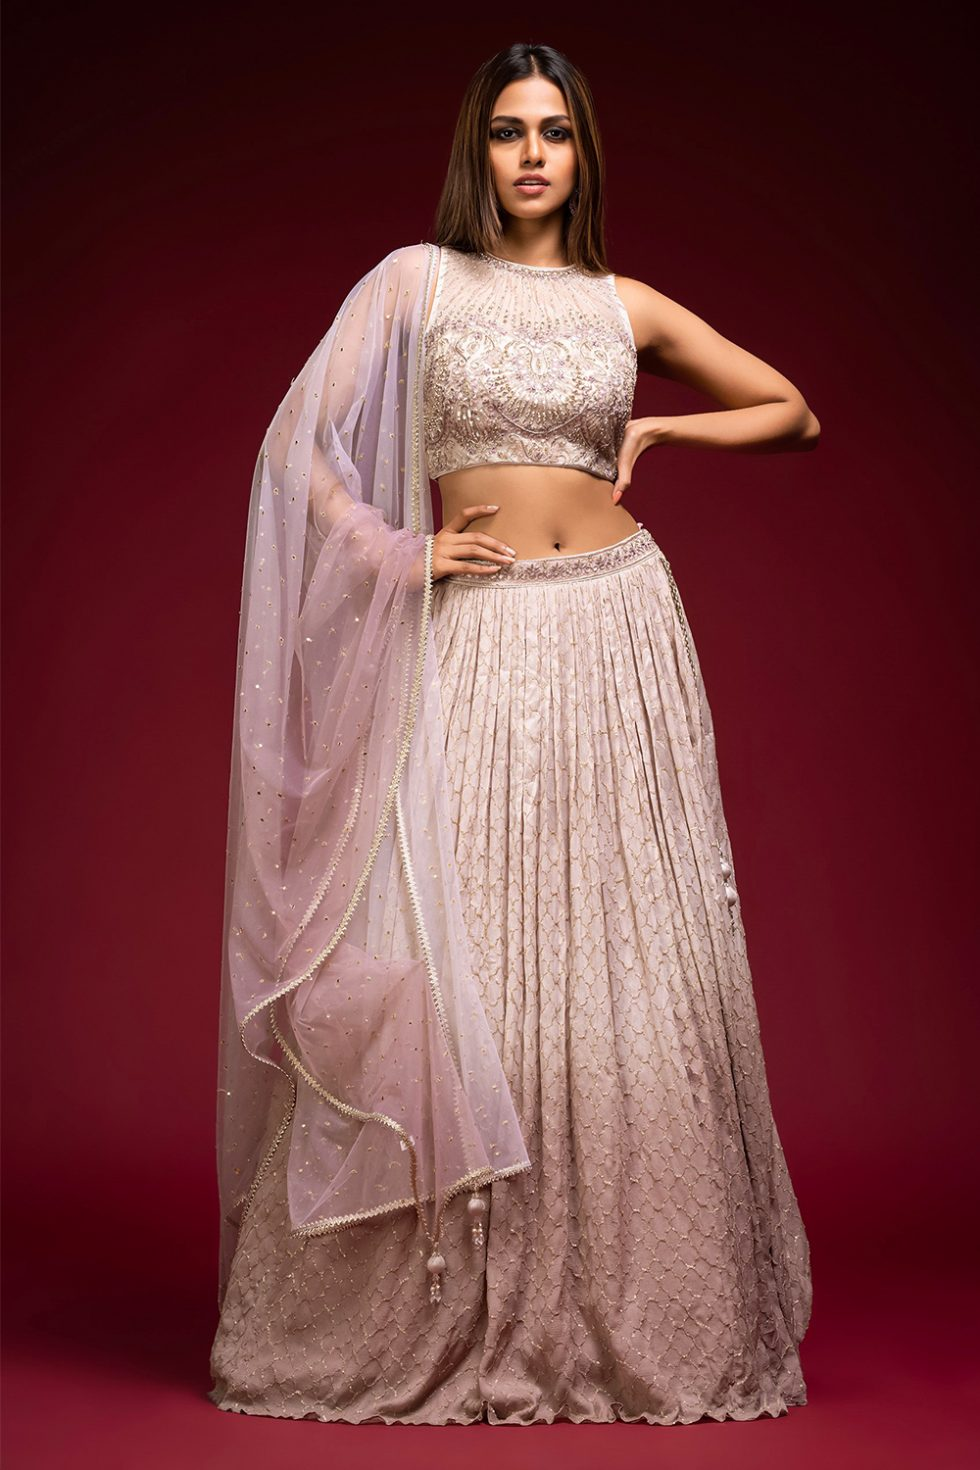 Ombré grey to pink geometric gold patterned lehenga set with a hand embroidered blouse paired with a matching shaded dupatta and gold butis.